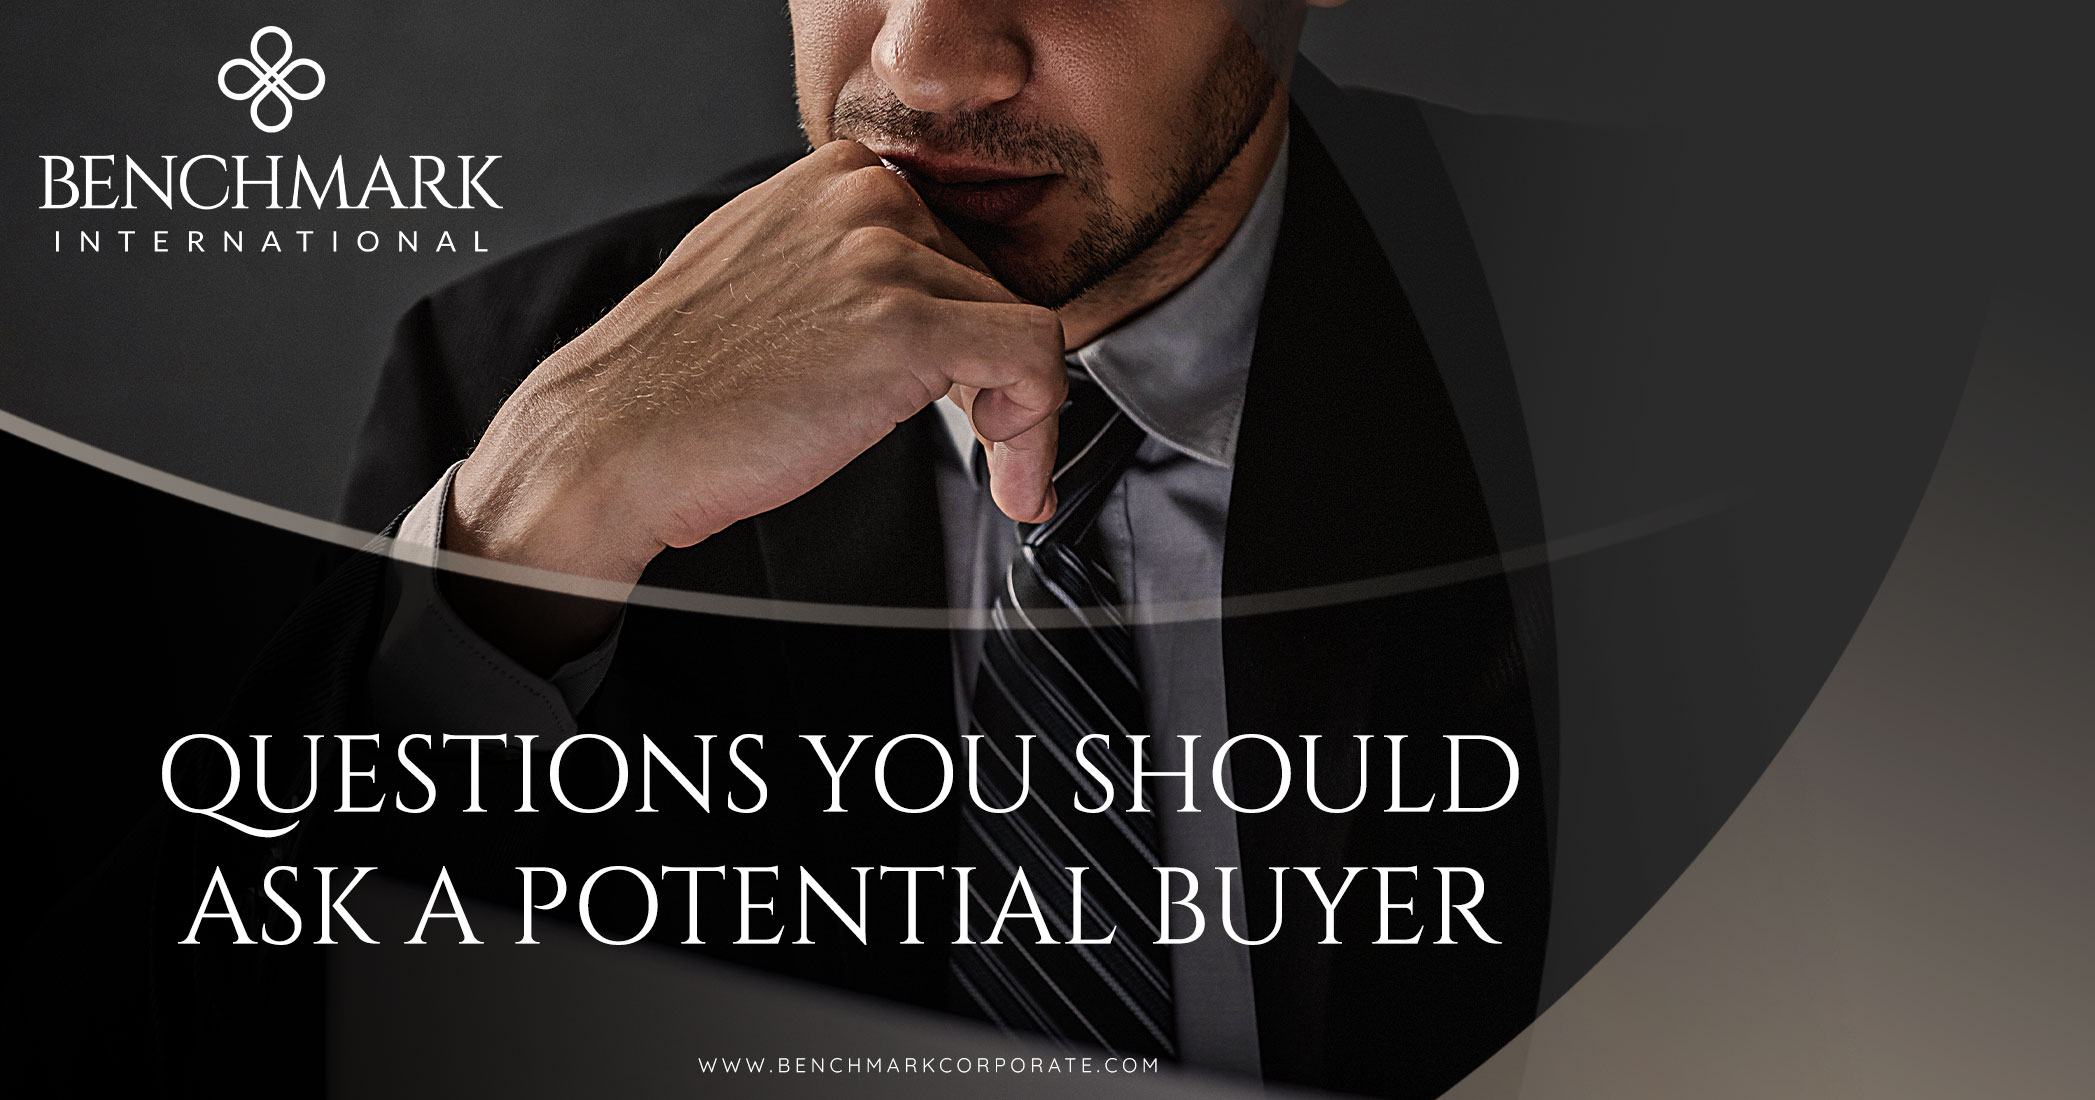 Questions You Should Ask a Potential Buyer